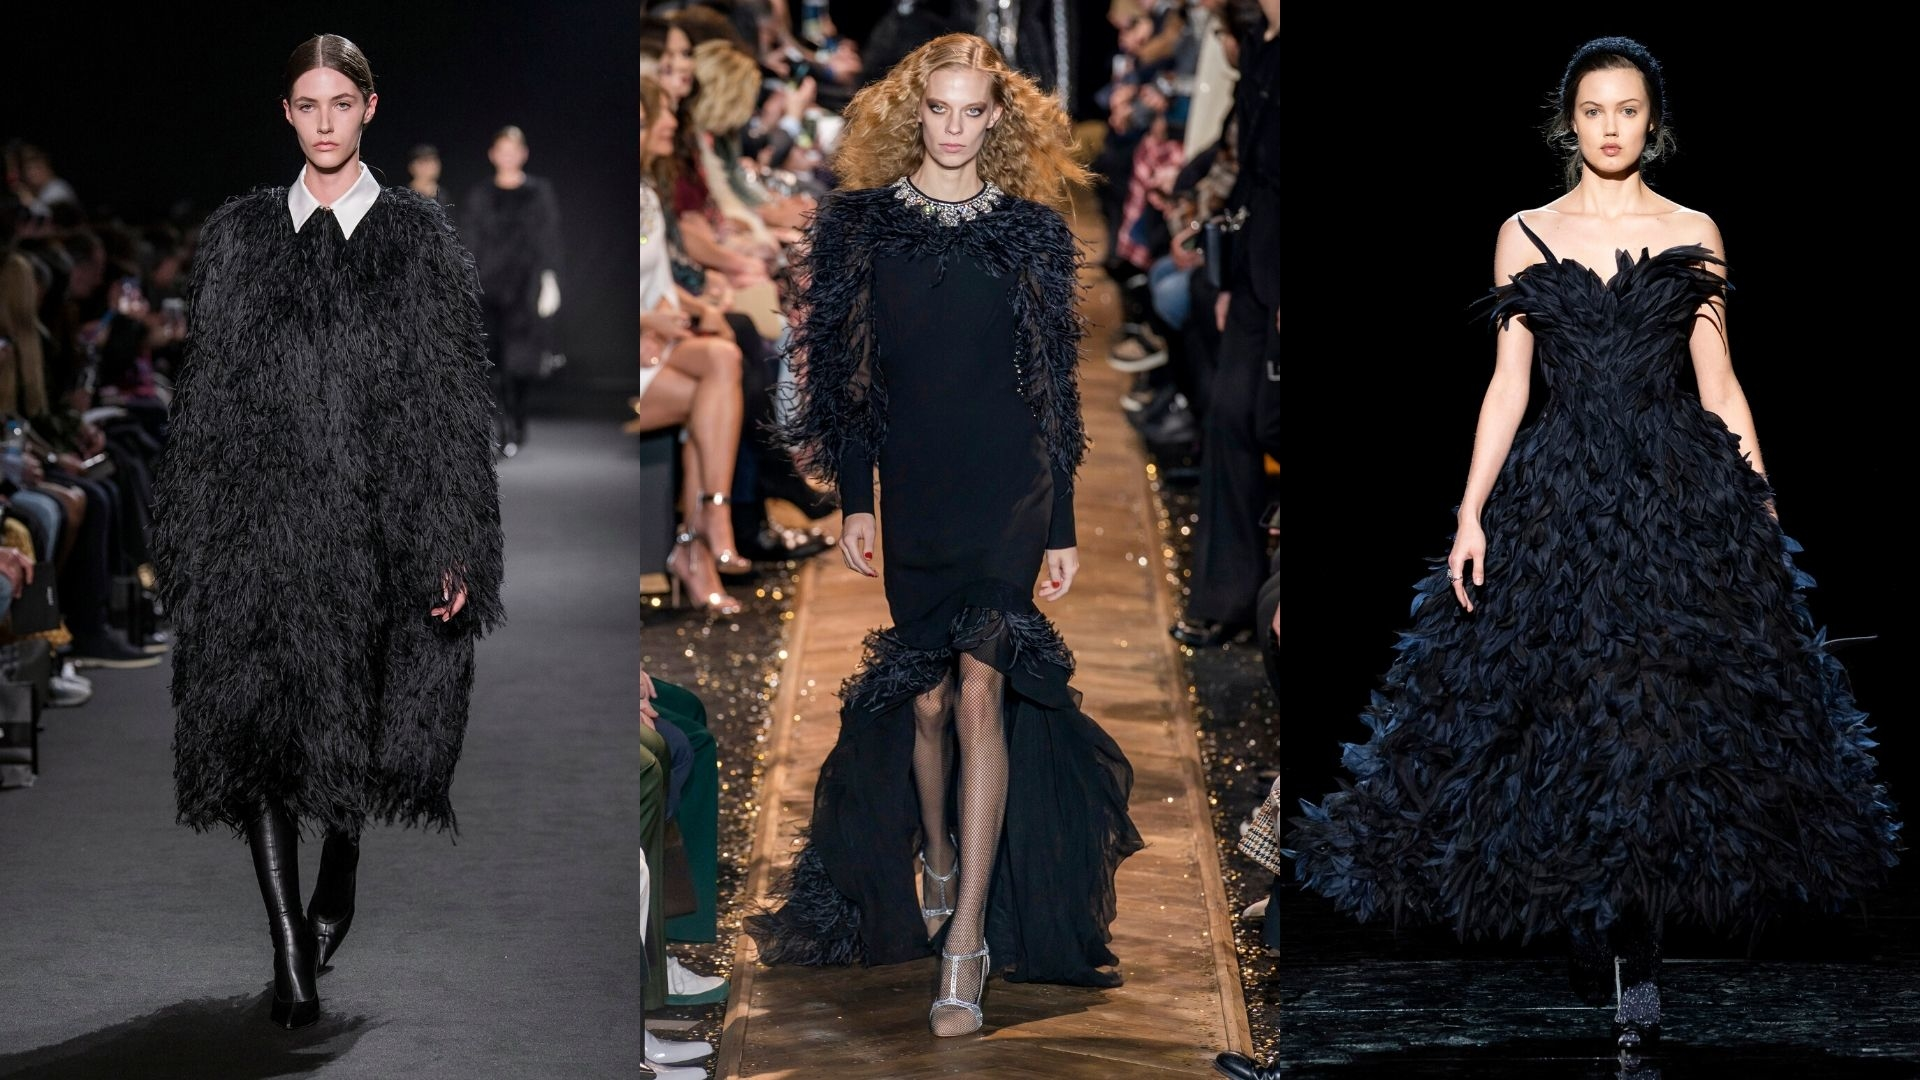 7 Dark Feathered Fashion Finds